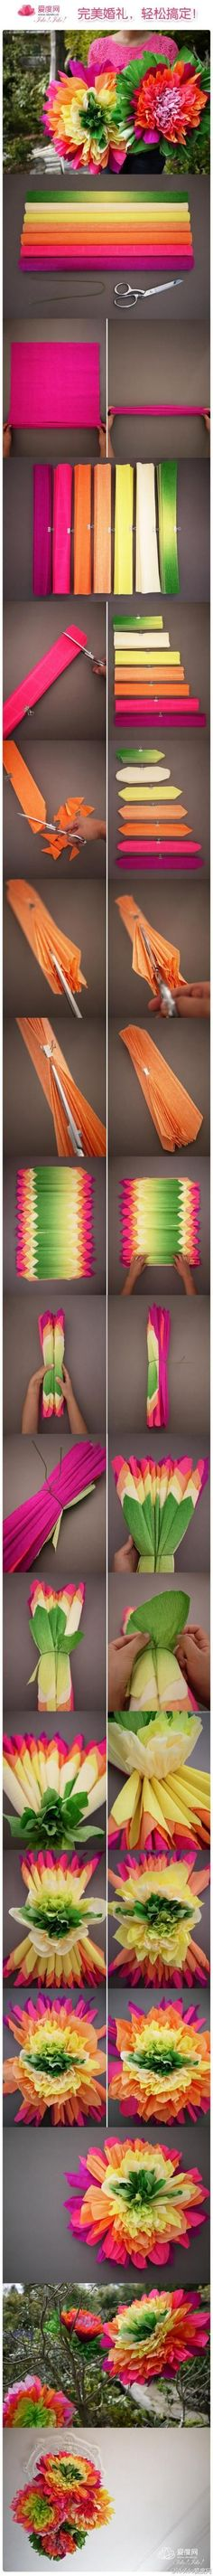 Wow! Super bright giant paper flowers to make.